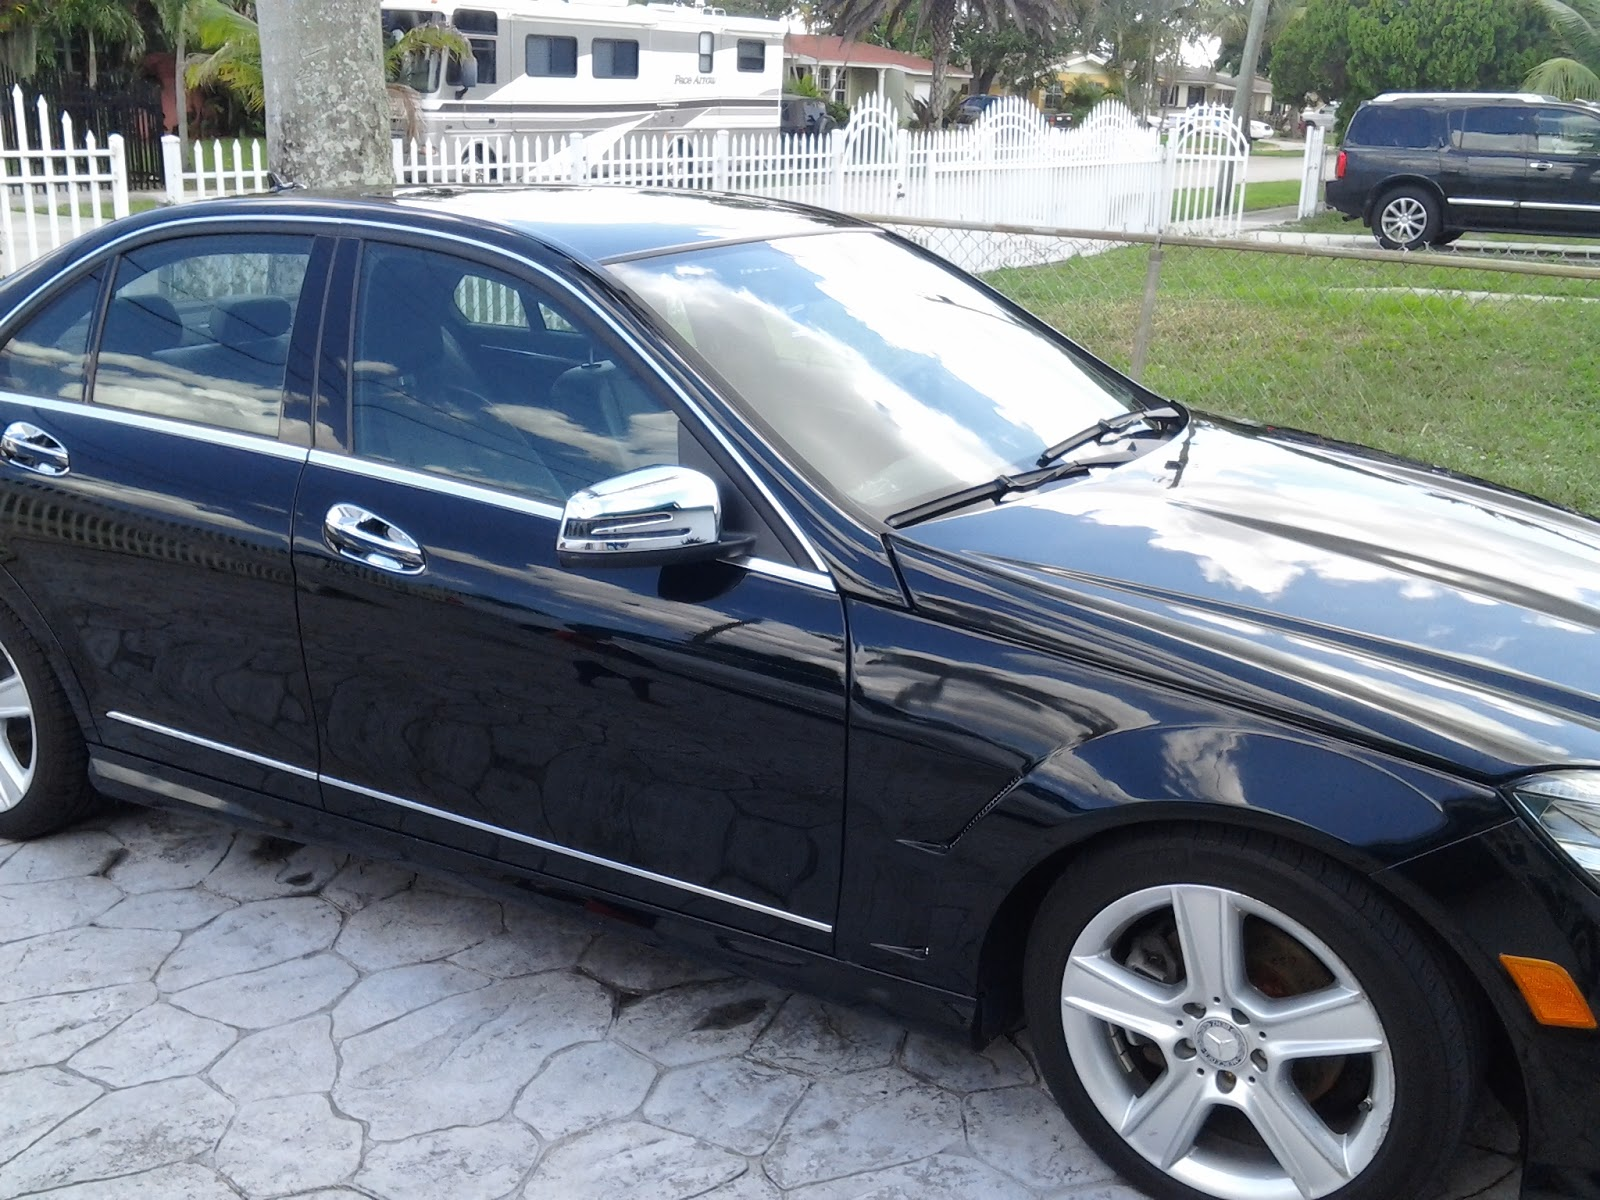 For sale 2010 mercedes benz c300 4matic wed news for Mercedes benz c300 4matic 2010 price